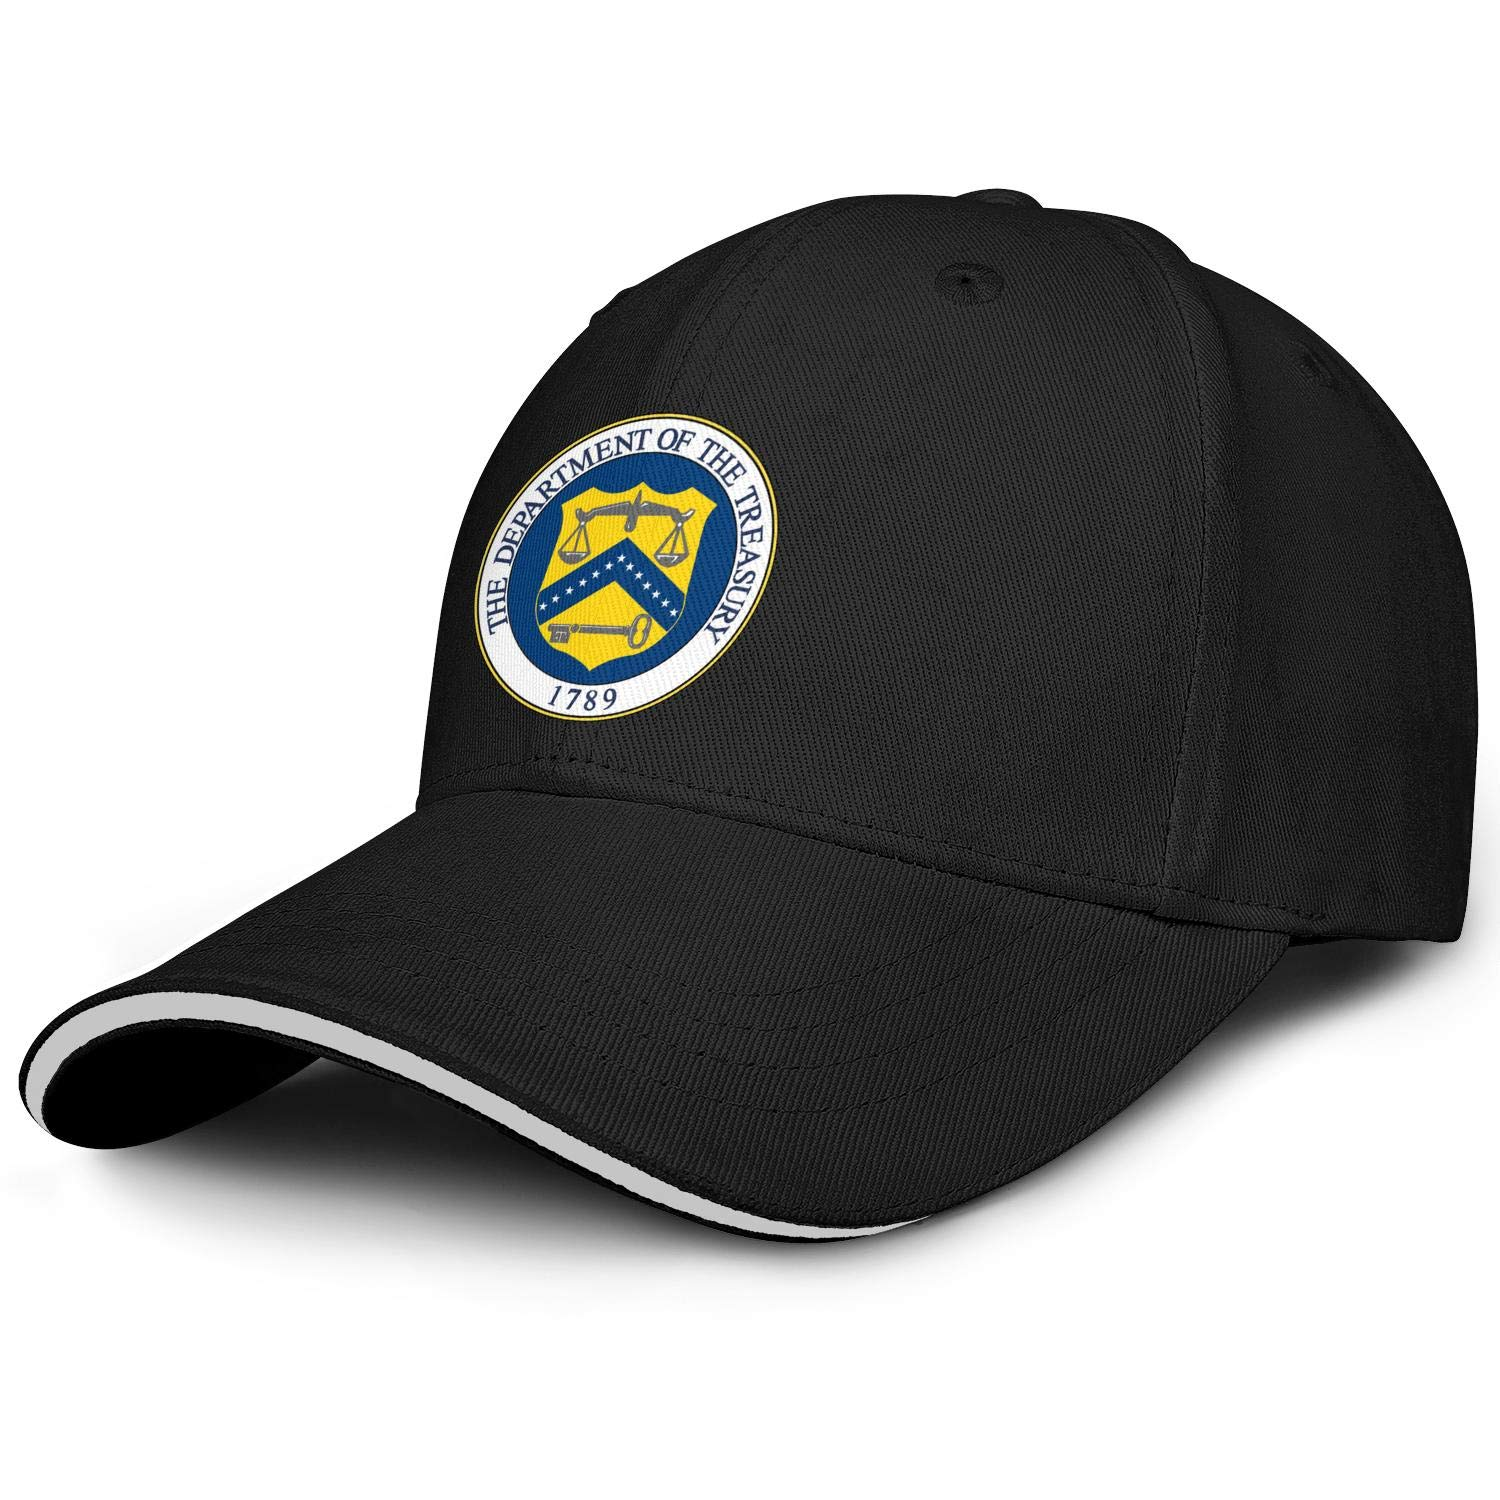 United States Department of The Treasury Baseball Caps Best Baseball Hats Mens Adjustable Snapback Ball Caps for Men